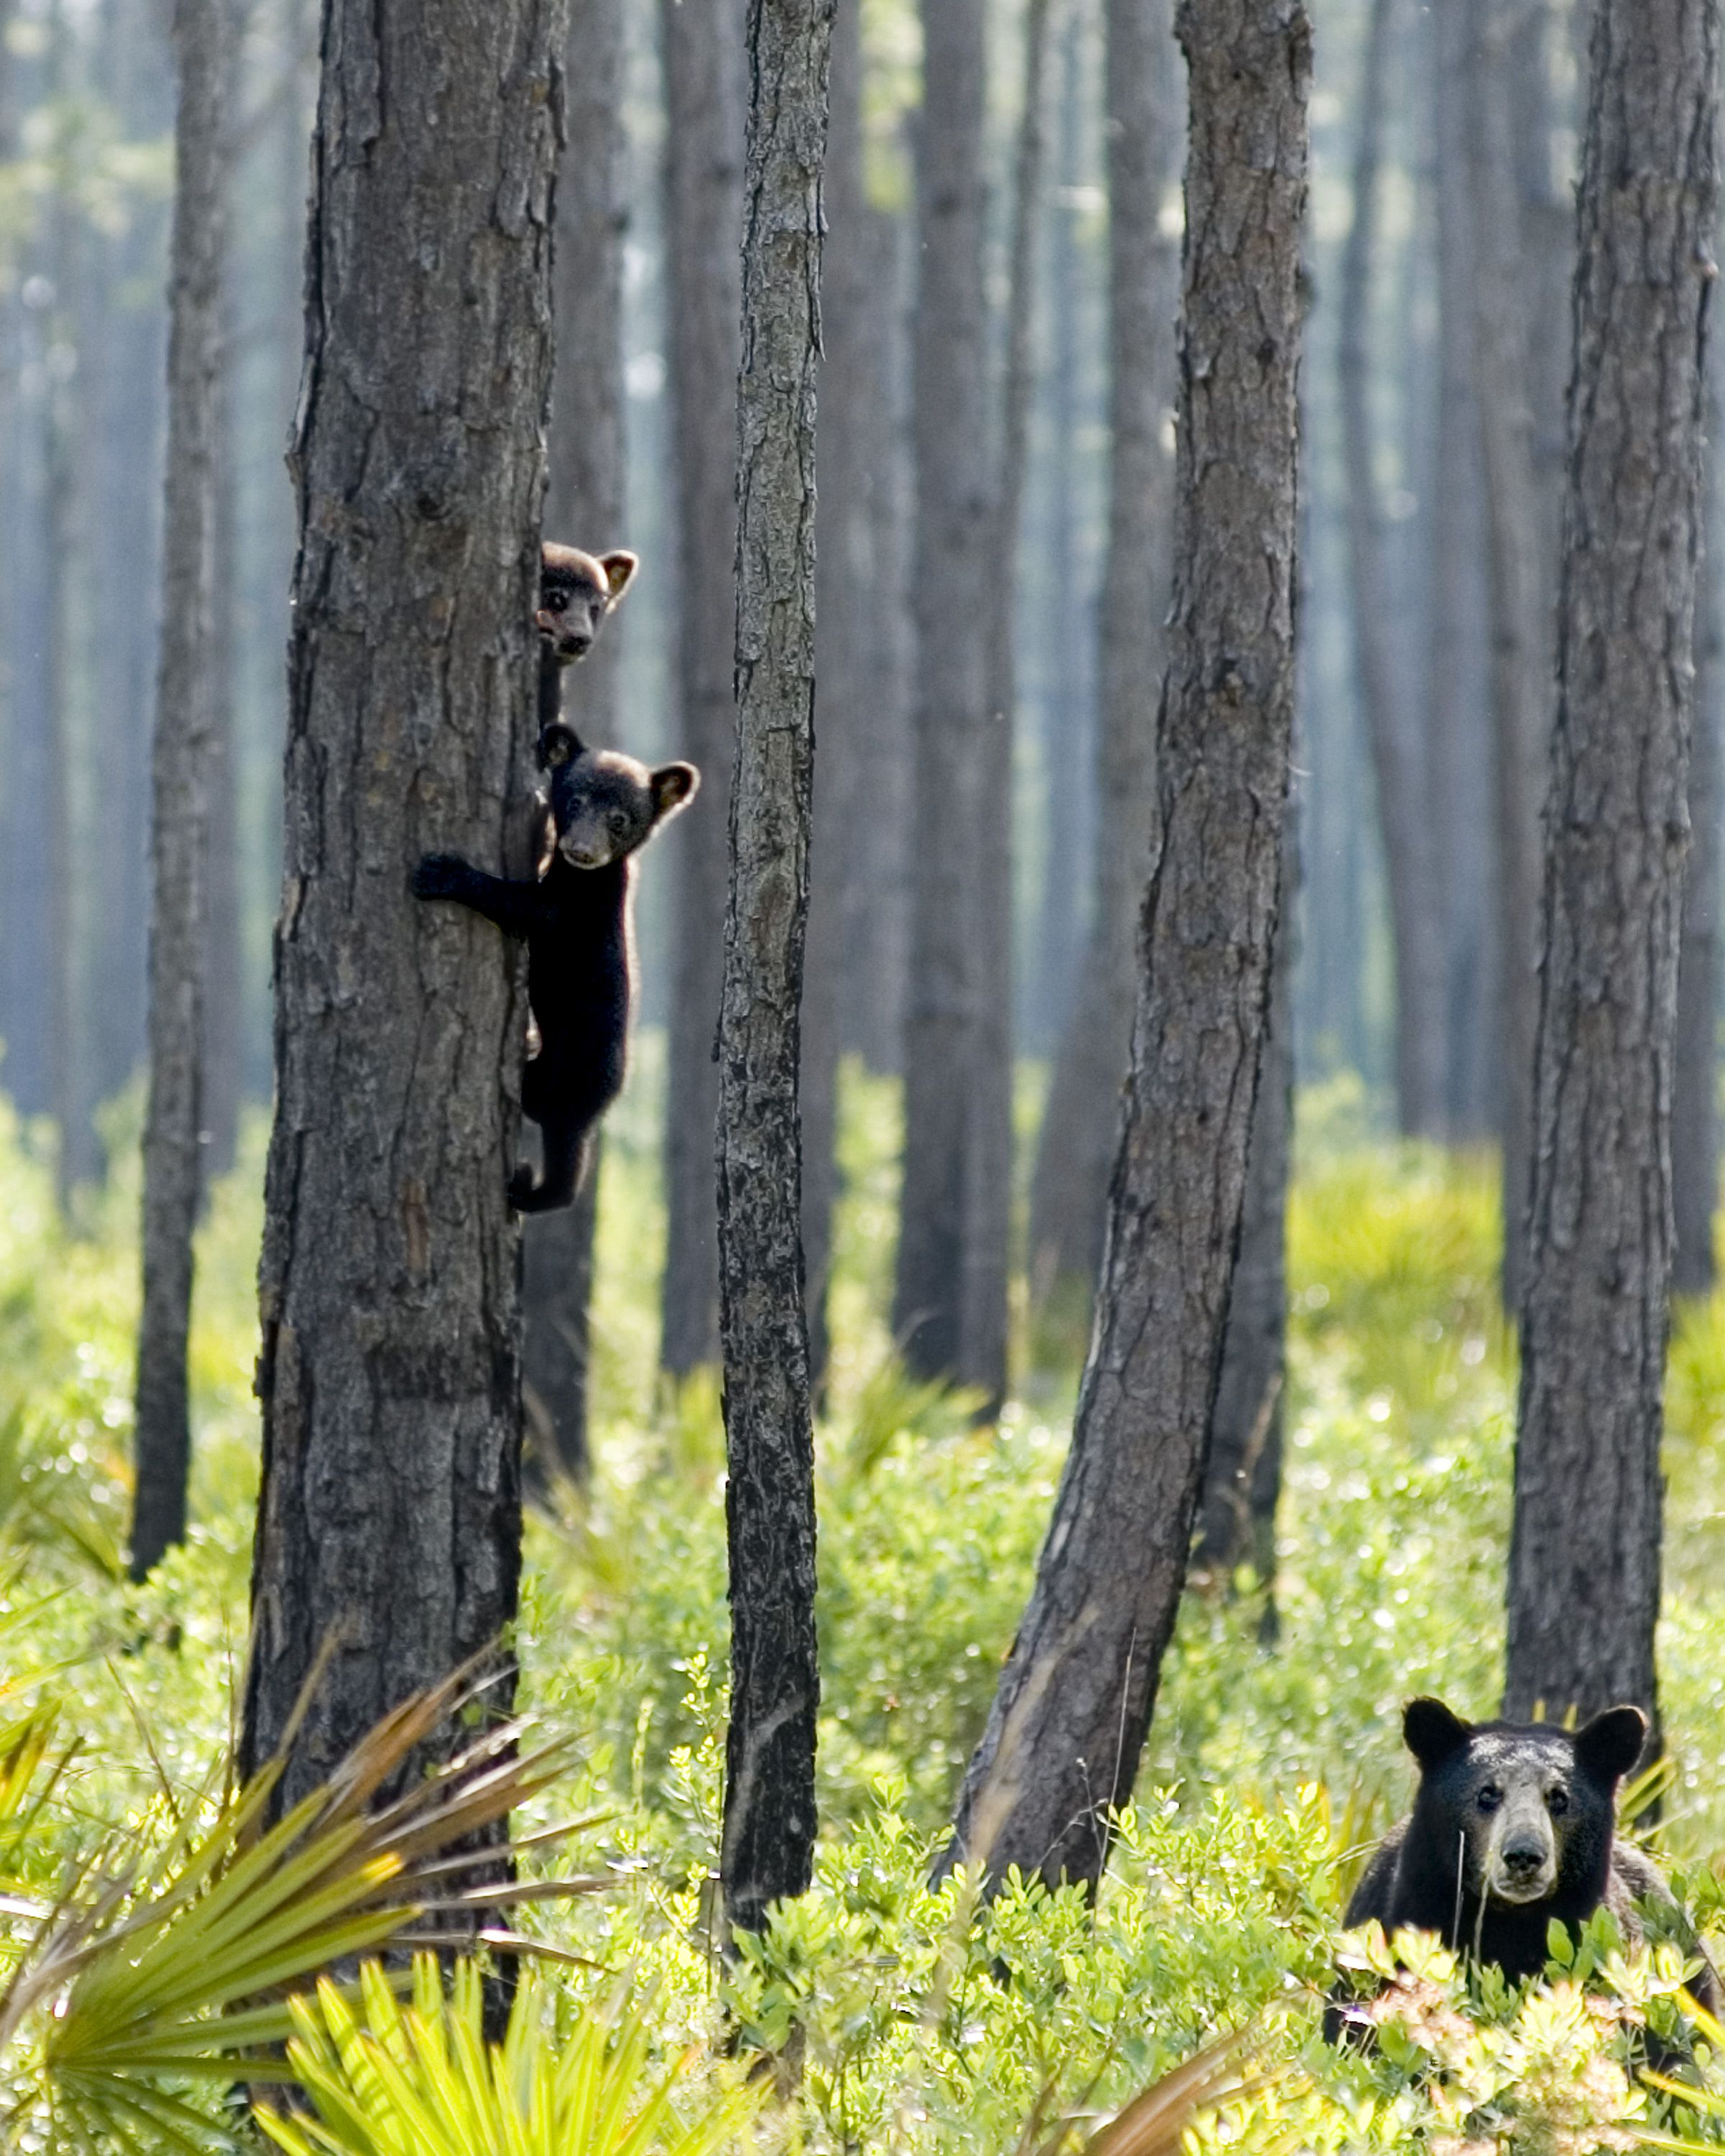 A mother black bear on the ground with cubs in a tree.